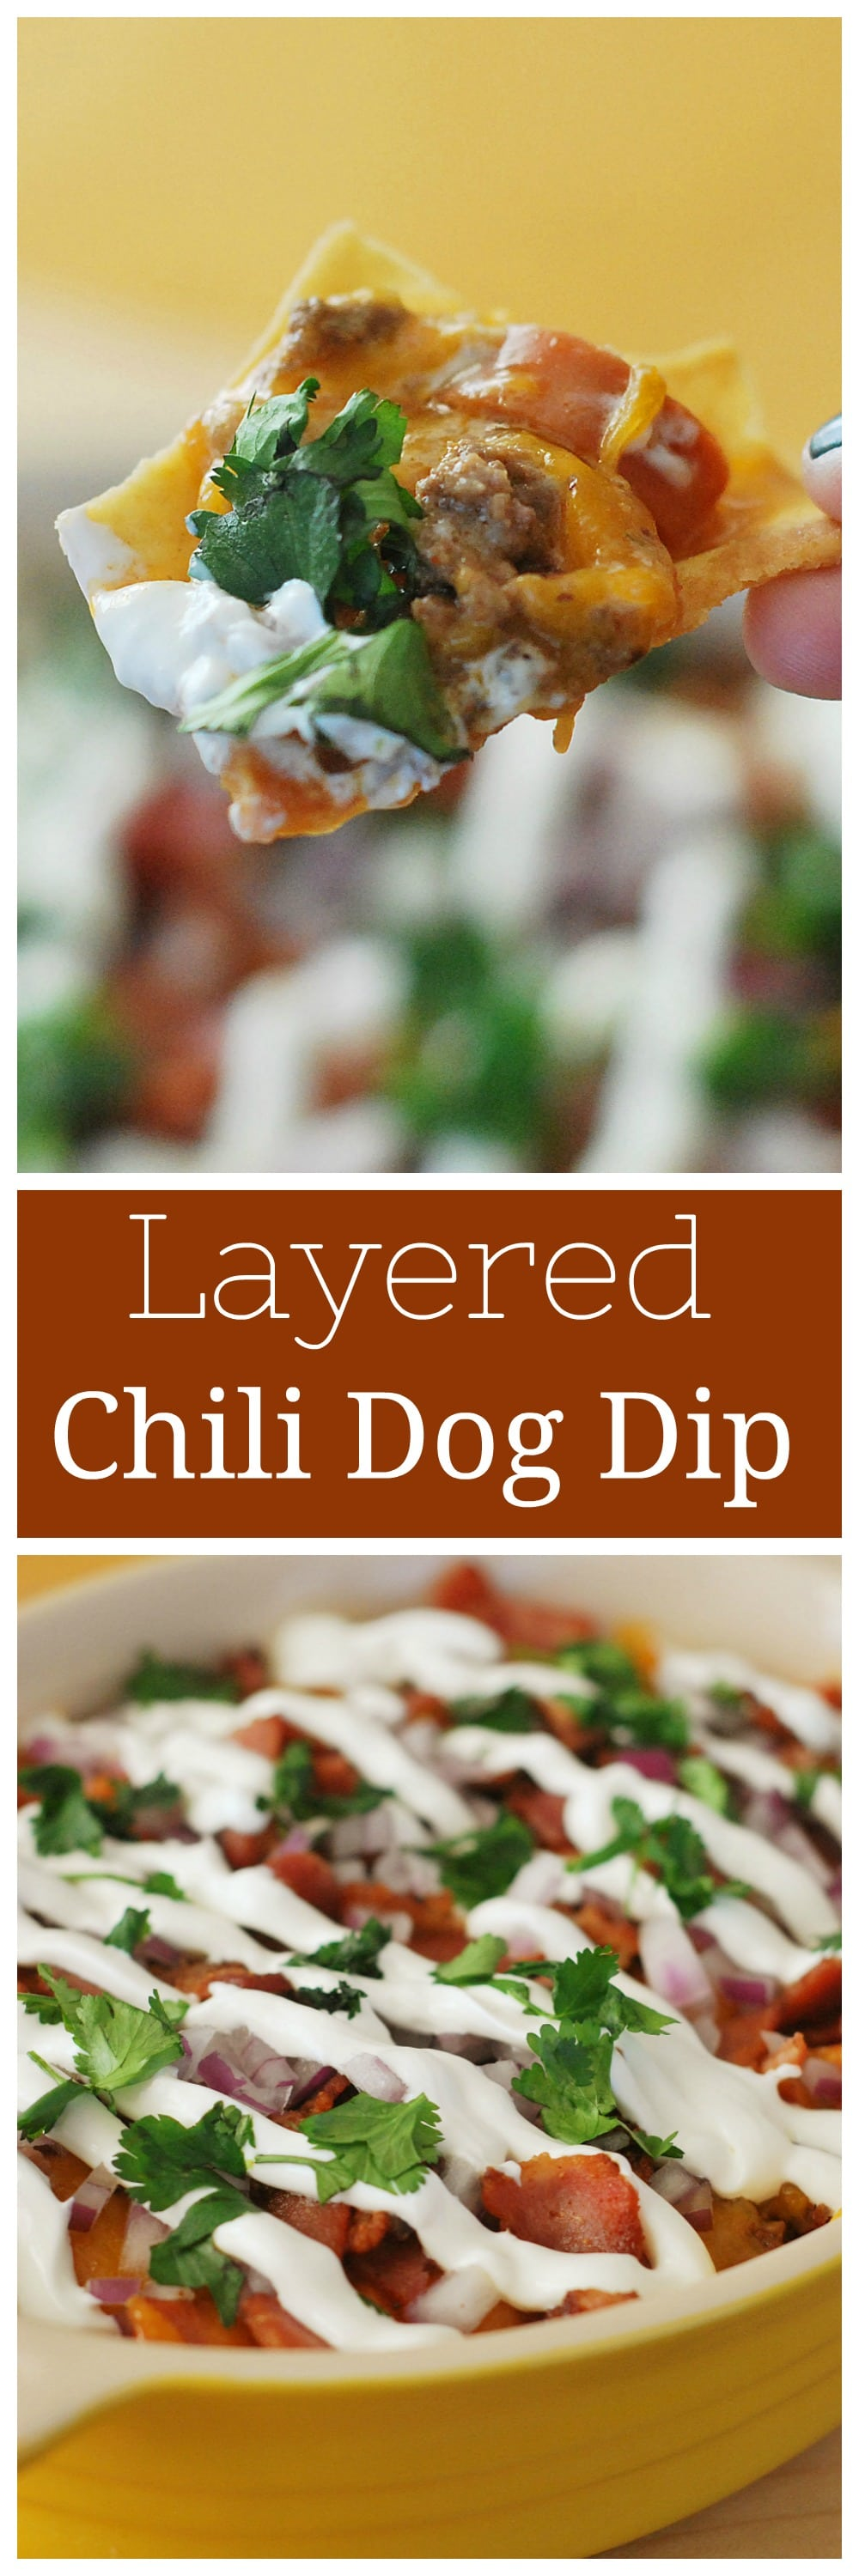 7 Layer Chili Cheese Dog Dip - perfect for football season! Layers of chili, hot dogs, bacon, cheese, sour cream, red onion, and cilantro - it's so delicious!